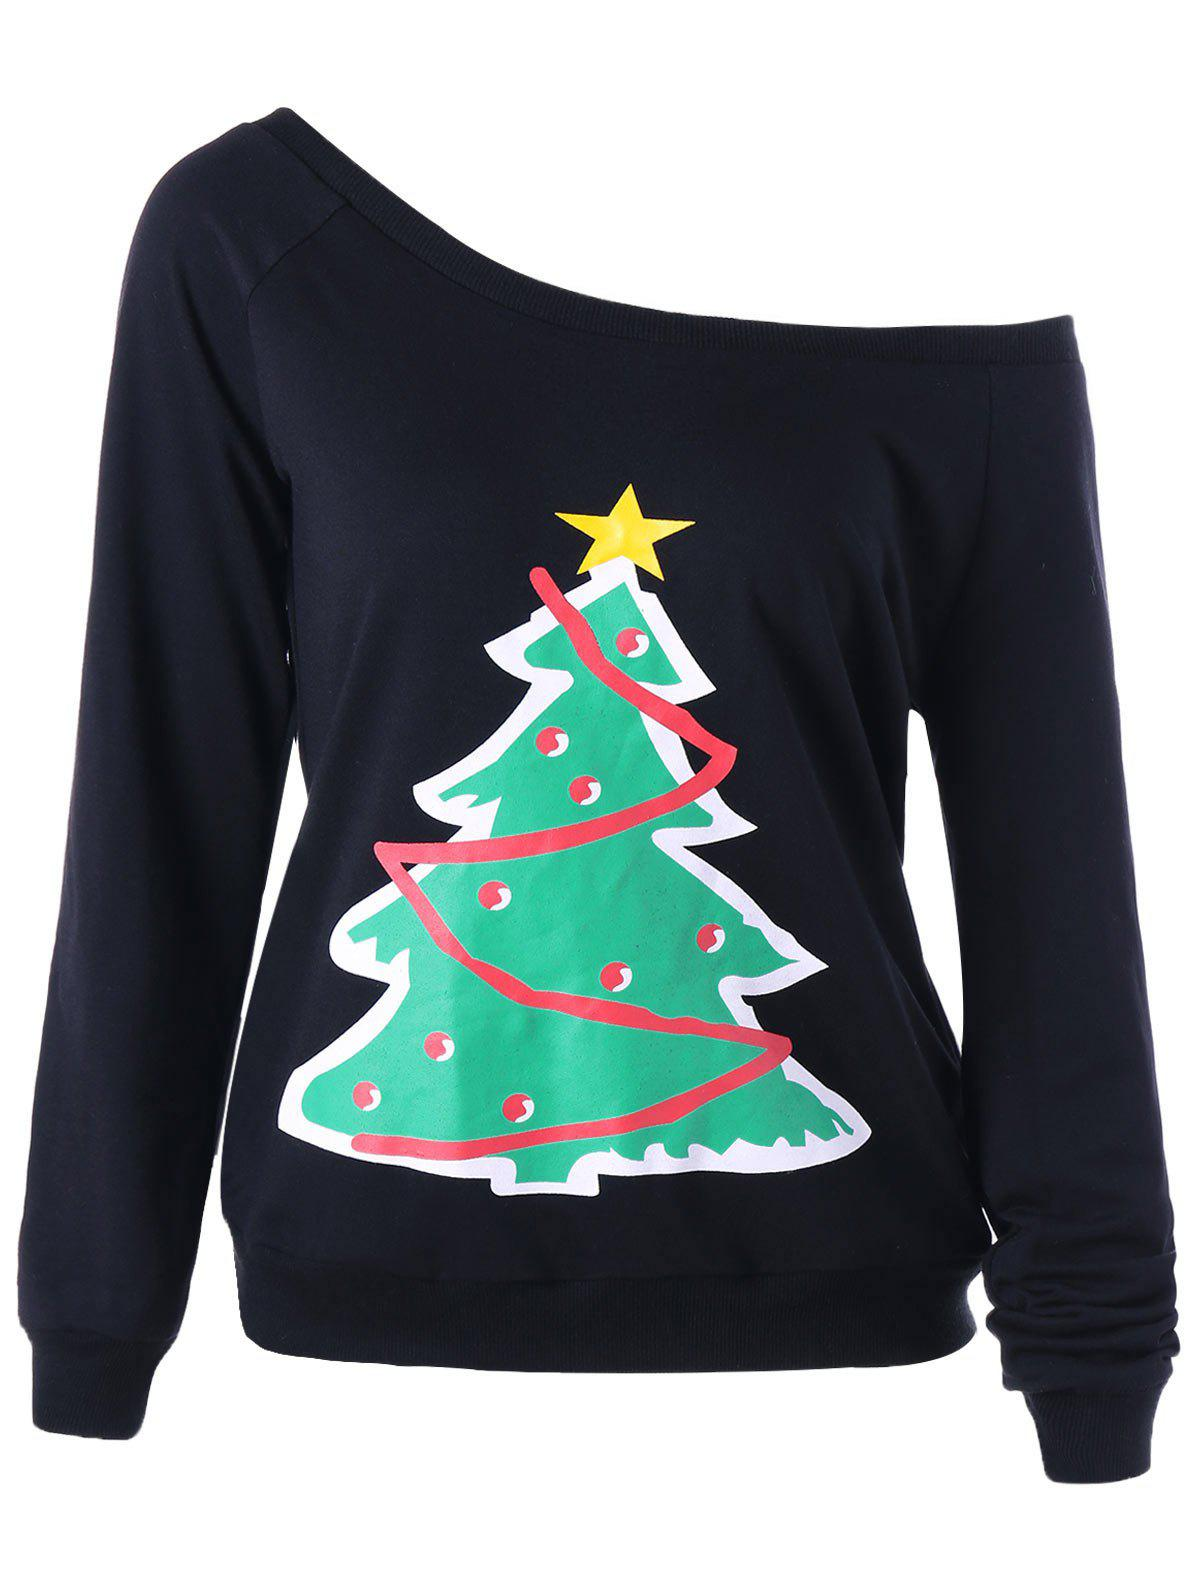 Ugly Christmas Tree One Shoulder SweatshirtWOMEN<br><br>Size: M; Color: BLACK; Material: Polyester; Shirt Length: Regular; Sleeve Length: Full; Collar: Convertible Collar; Style: Fashion; Pattern Type: Plant; Season: Fall,Spring; Weight: 0.3530kg; Package Contents: 1 x Sweatshirt;